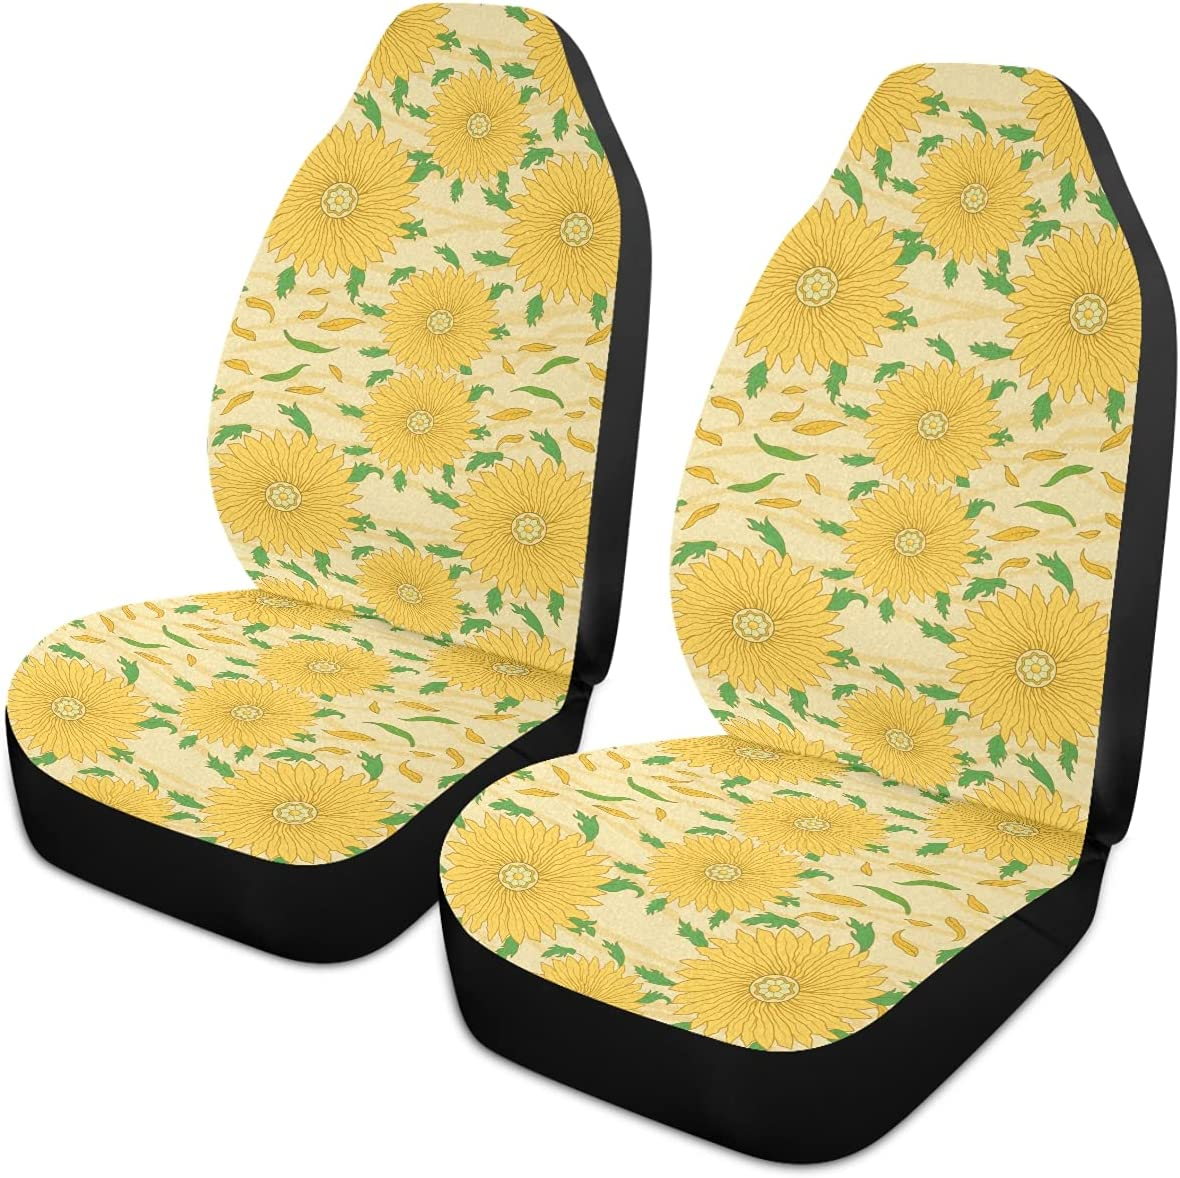 Oarencol Sunflower Car Seat Covers Max 55% Direct sale of manufacturer OFF Pattern Yellow Flowers Stripe